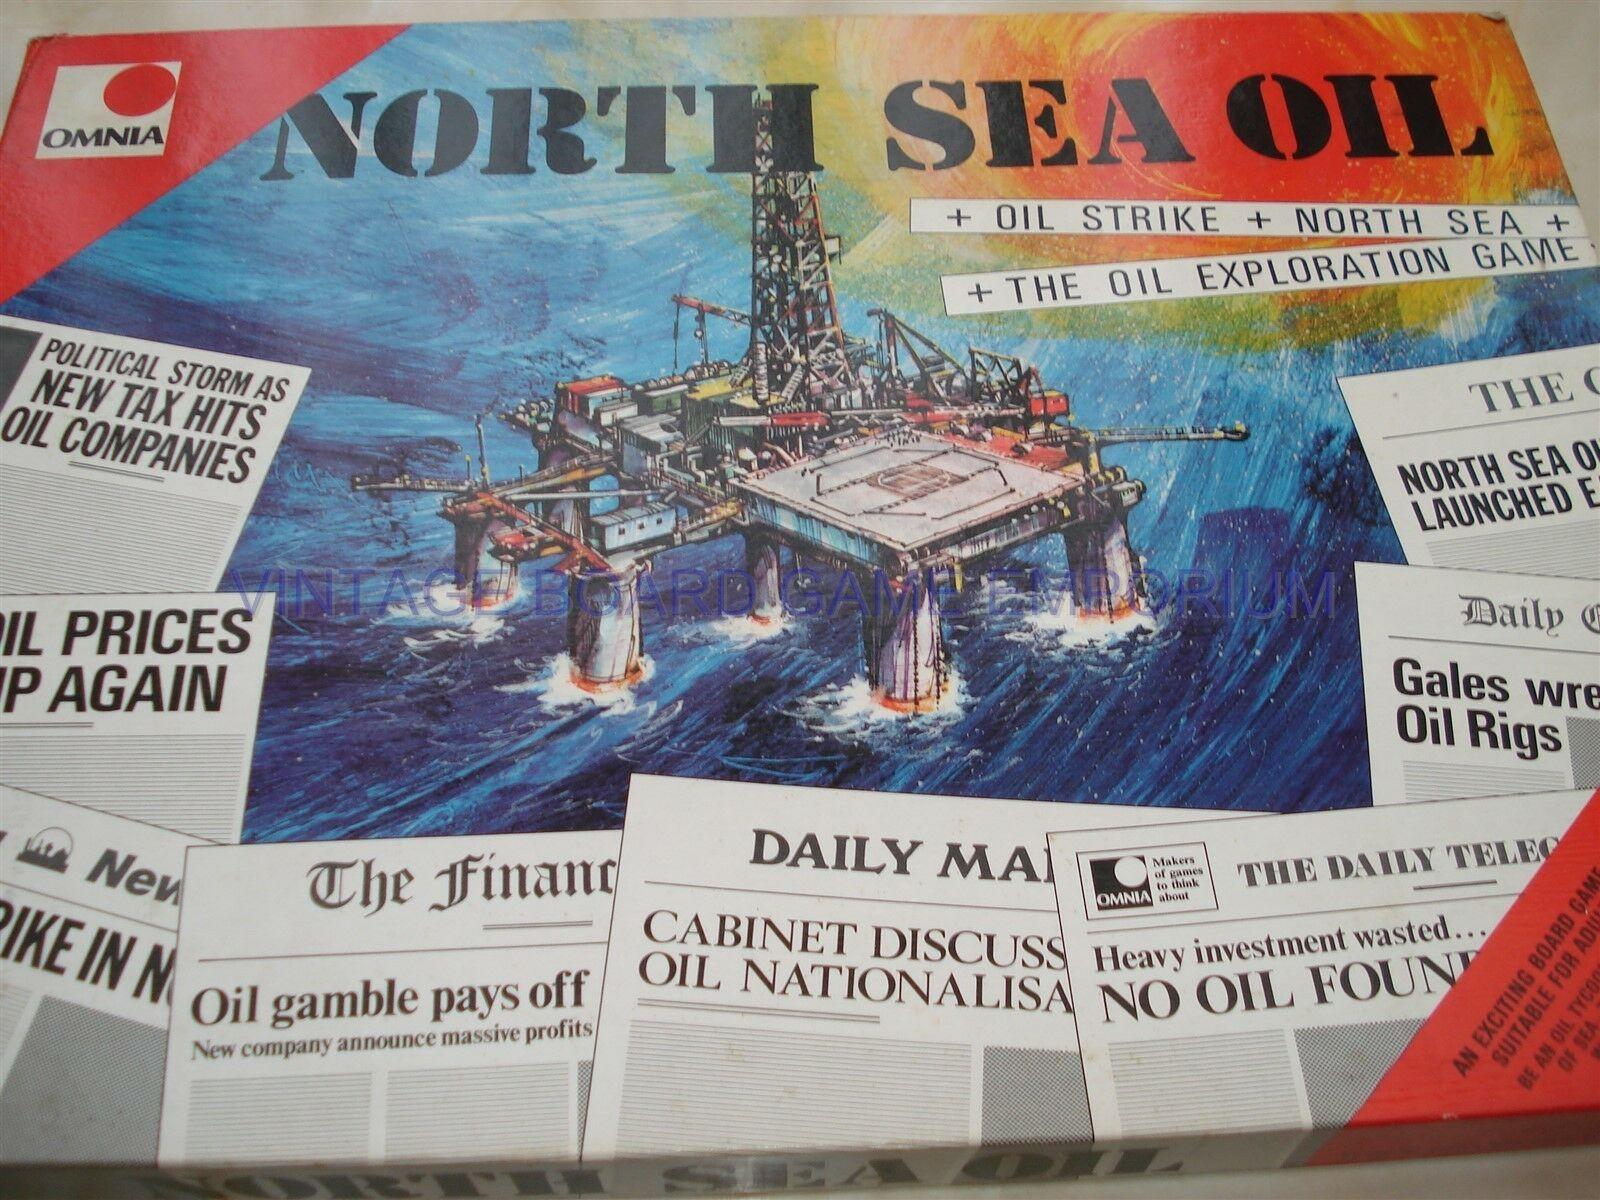 NORTH SEA OIL GAME GAME GAME - OMNIA -  OFFSHORE OIL - STRATEGY GAME - OIL STRIKE GAME 687b0f